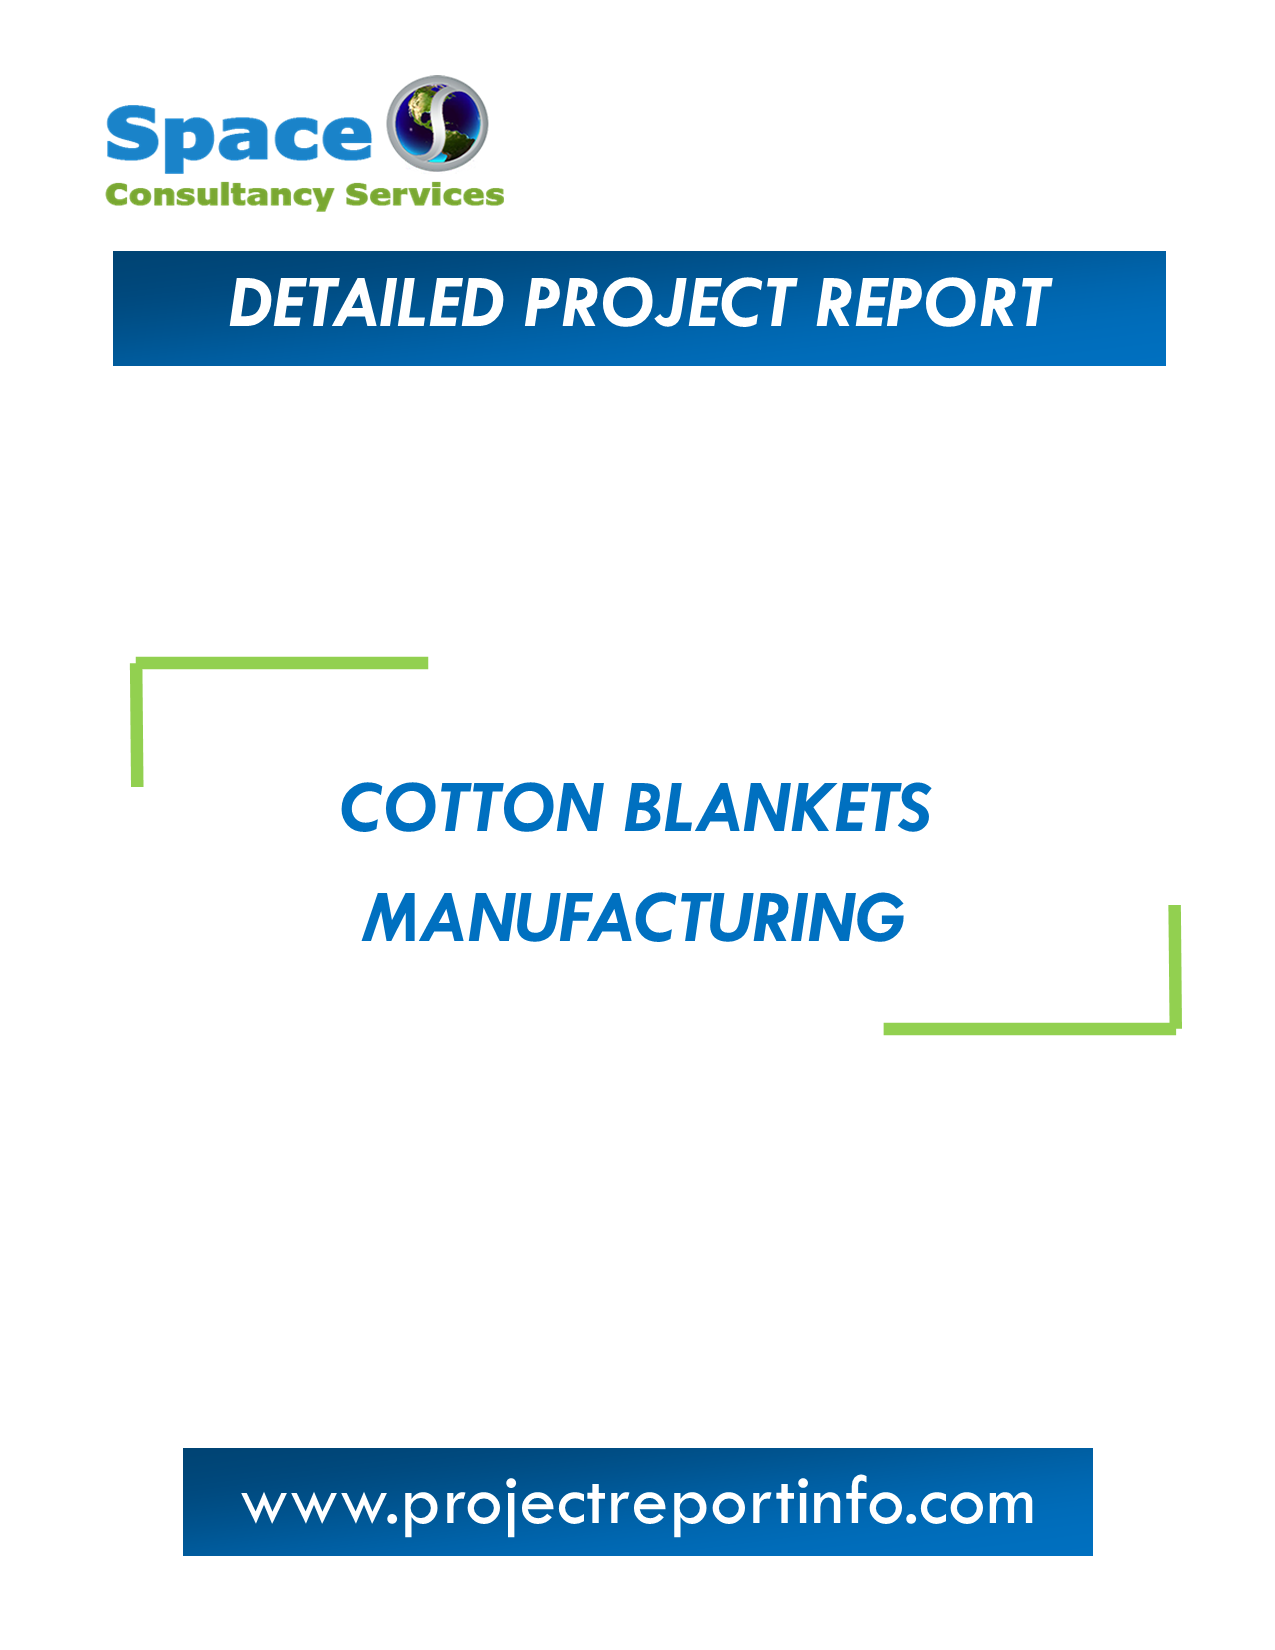 Project Report on Cotton Blankets Manufacturing